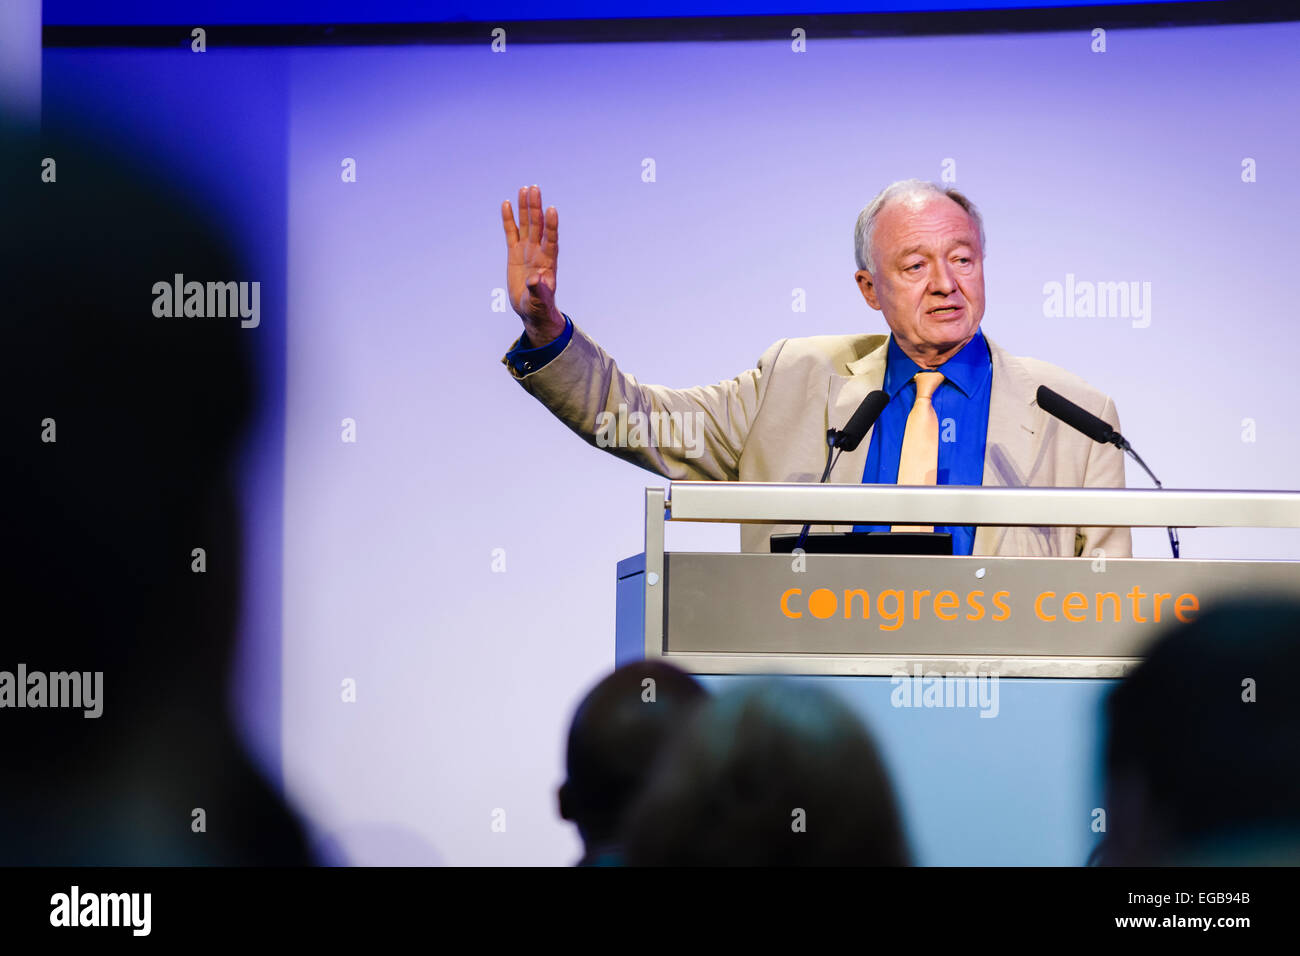 London, UK. 21st Feb, 2015. Ken Livingstone, former London Mayor and member of Labour's National Executive Committee, - Stock Image